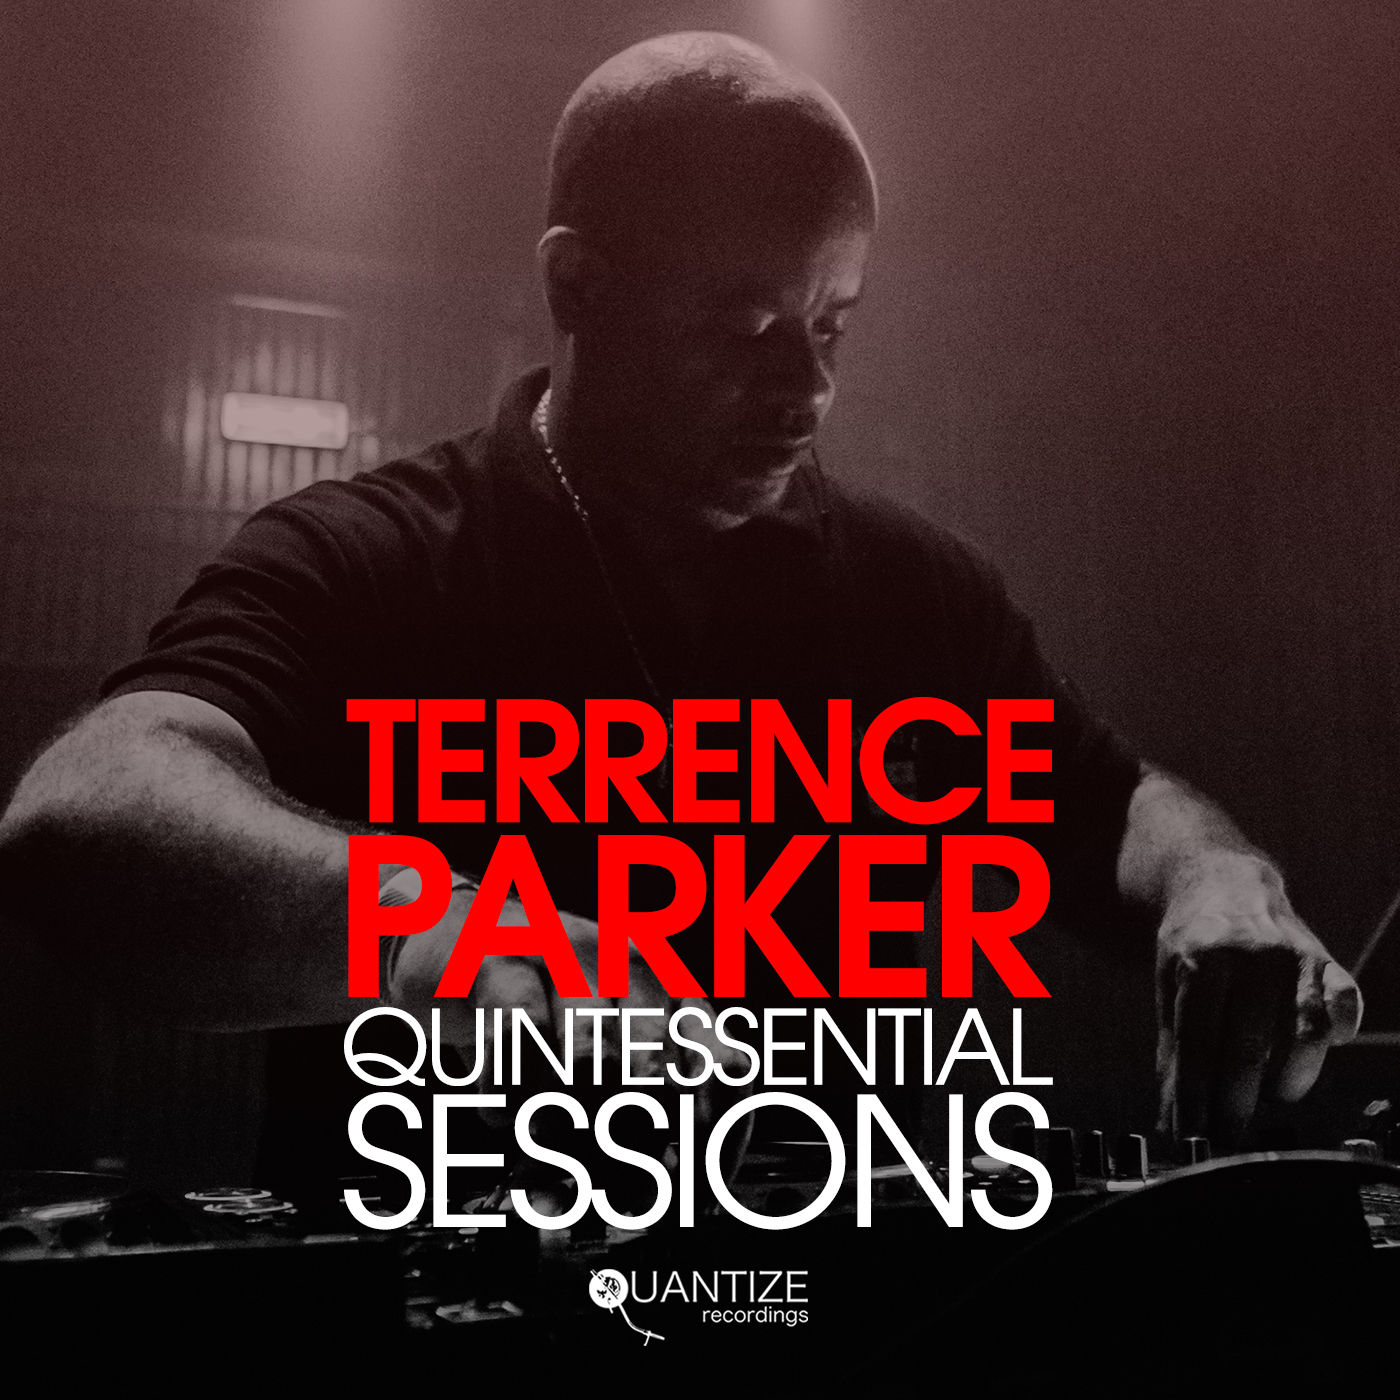 VA - Terrence Parker Quintessential Sessions (2020)